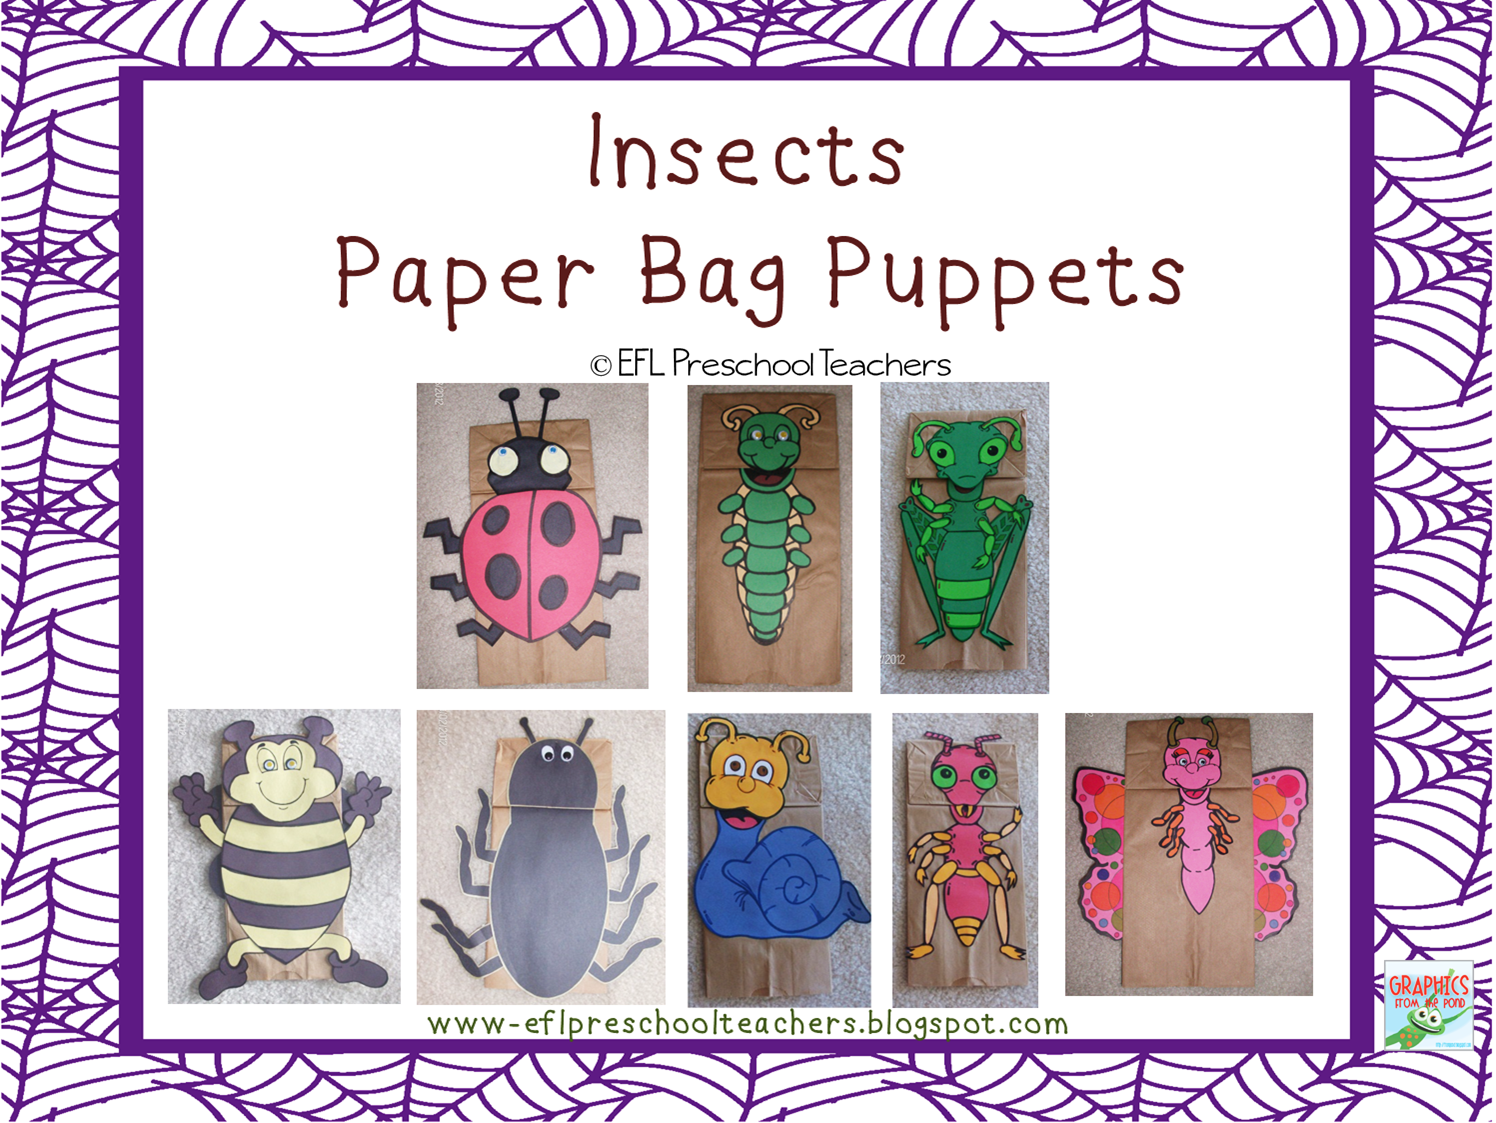 Esl Efl Preschool Teachers Insects Bugs For Ela Teachherpleaseblogspotcom Use Them To Read A Story Or Sing Song Chant Many Students Would Like Make Their Own Get The Files Please Write My Email